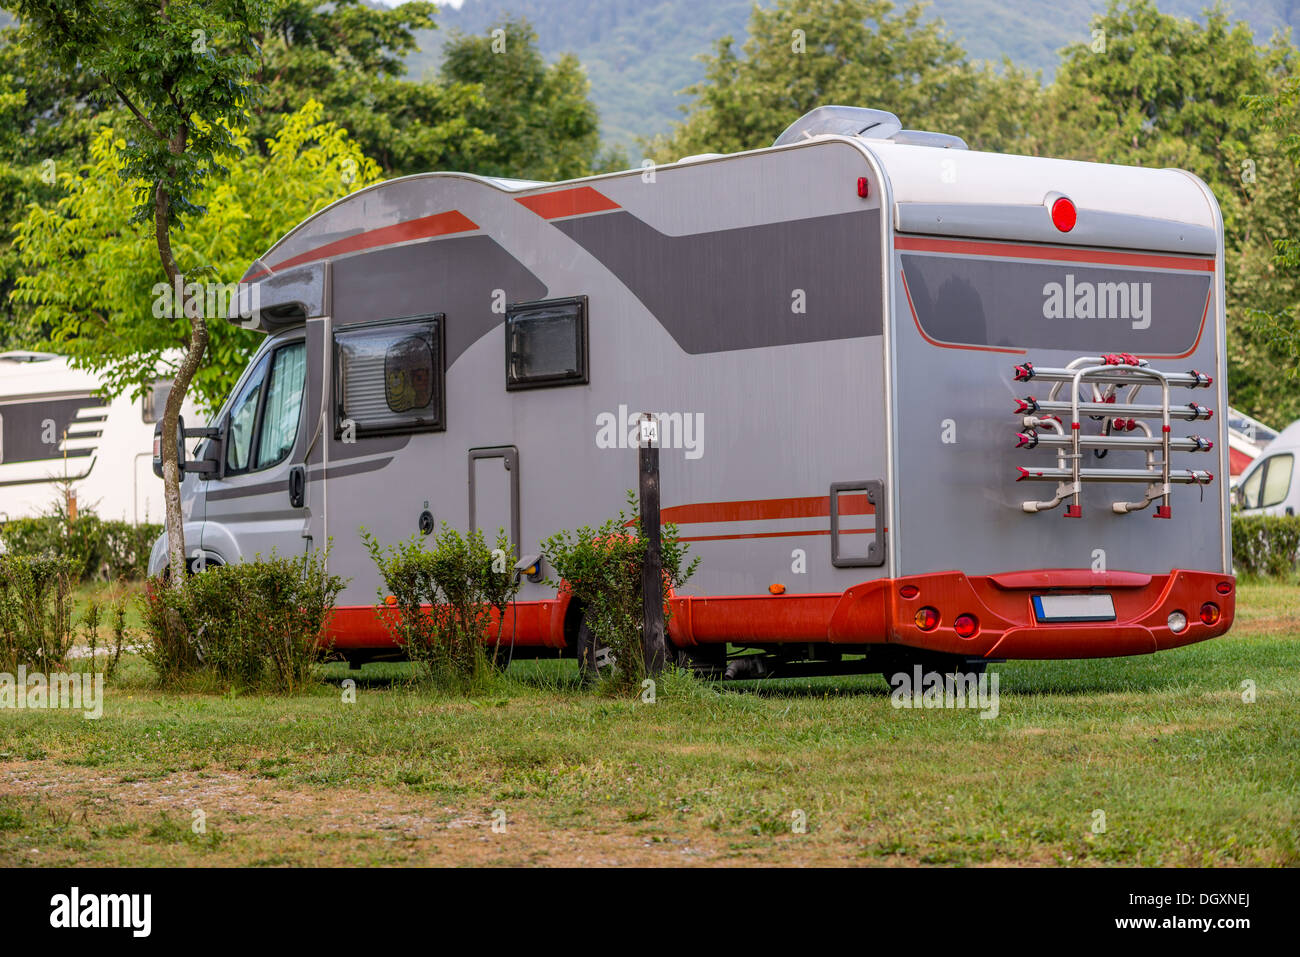 Mobile Home Camping Vehicle Trailer Car Tent Summer Holiday Vacations Park Travel Destinations Field Grass